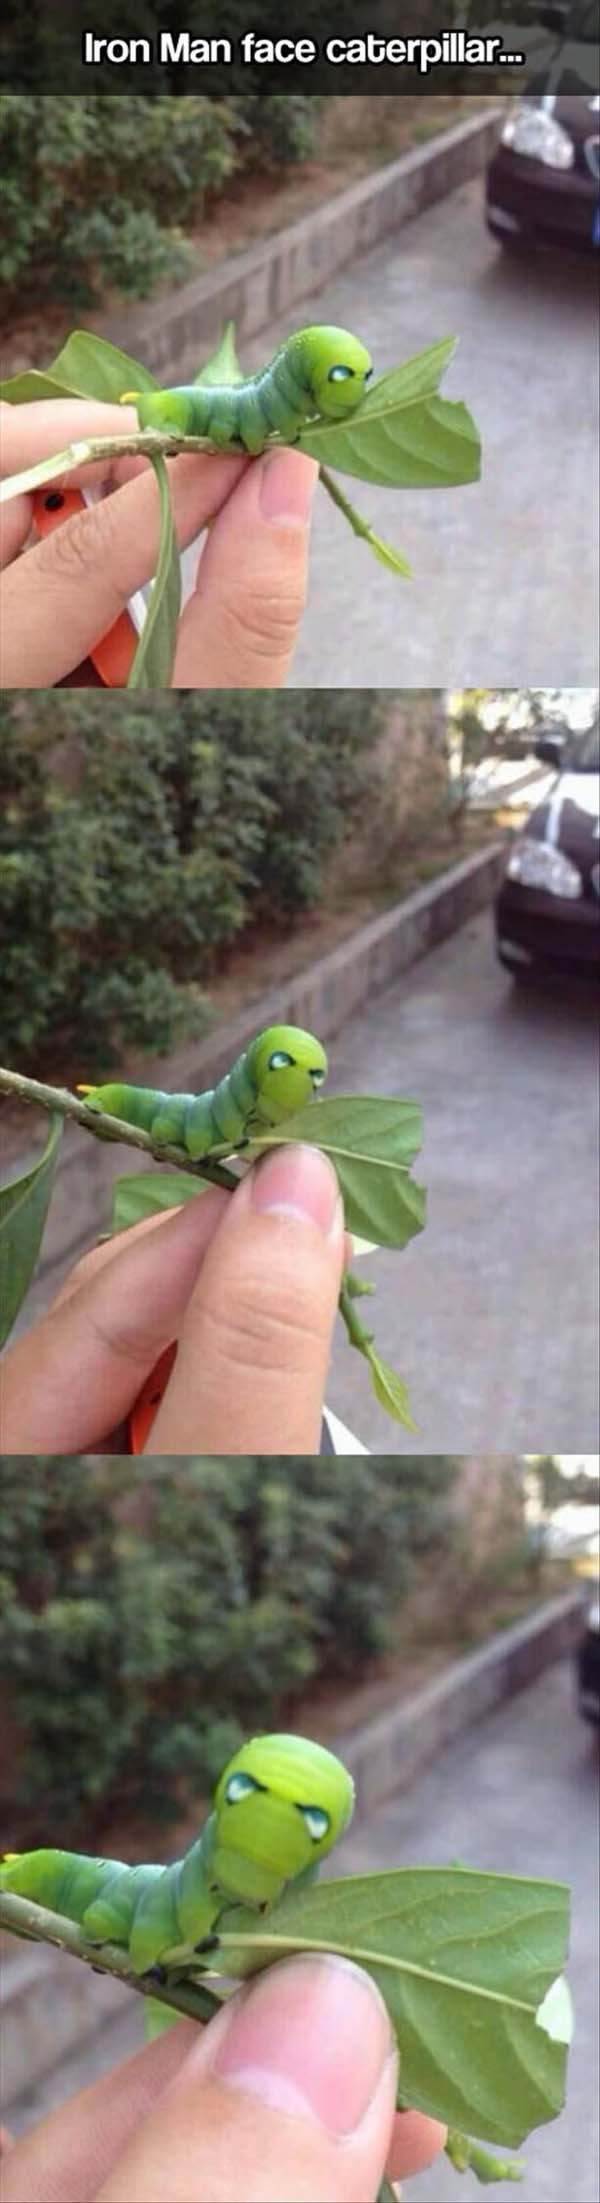 Iron Man Face Caterpillar - Funny pictures